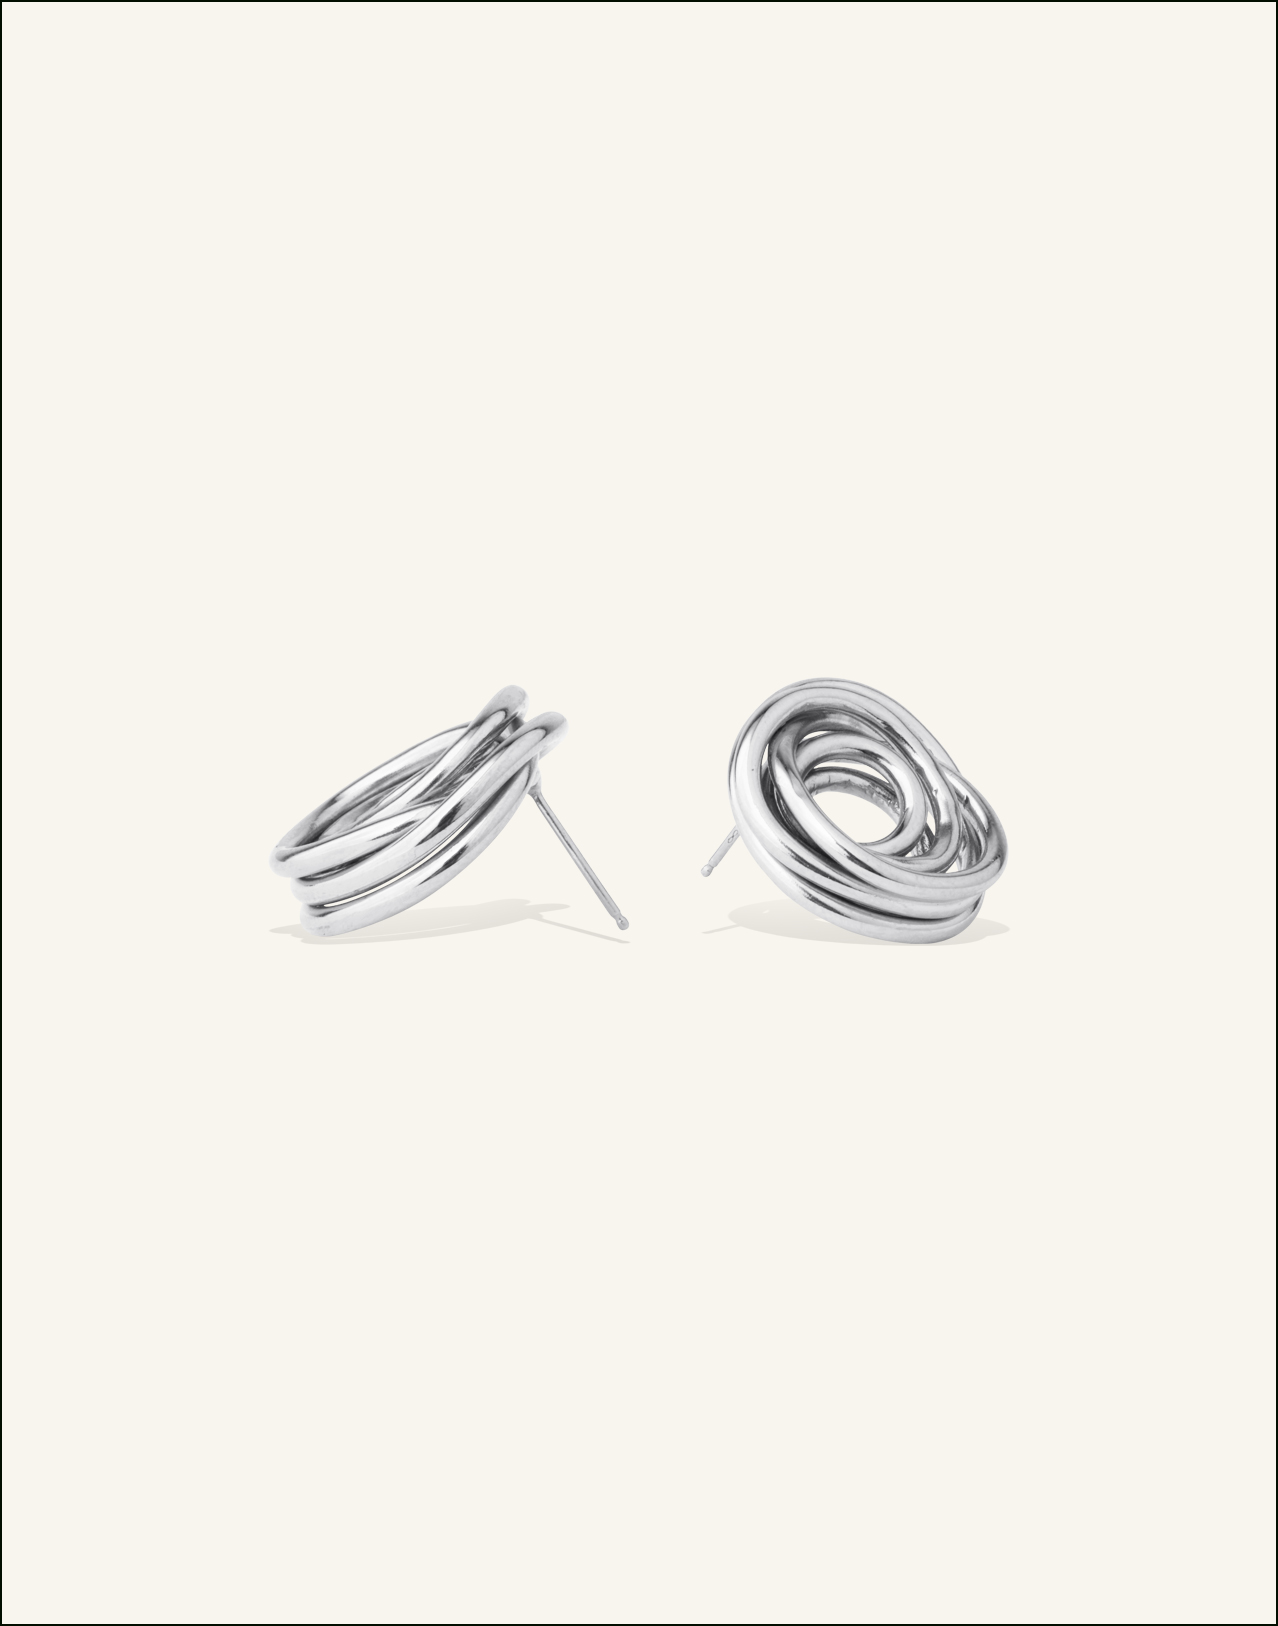 Completedworks-Silver-Earrings-Hotel-Matisse-2-1.jpg